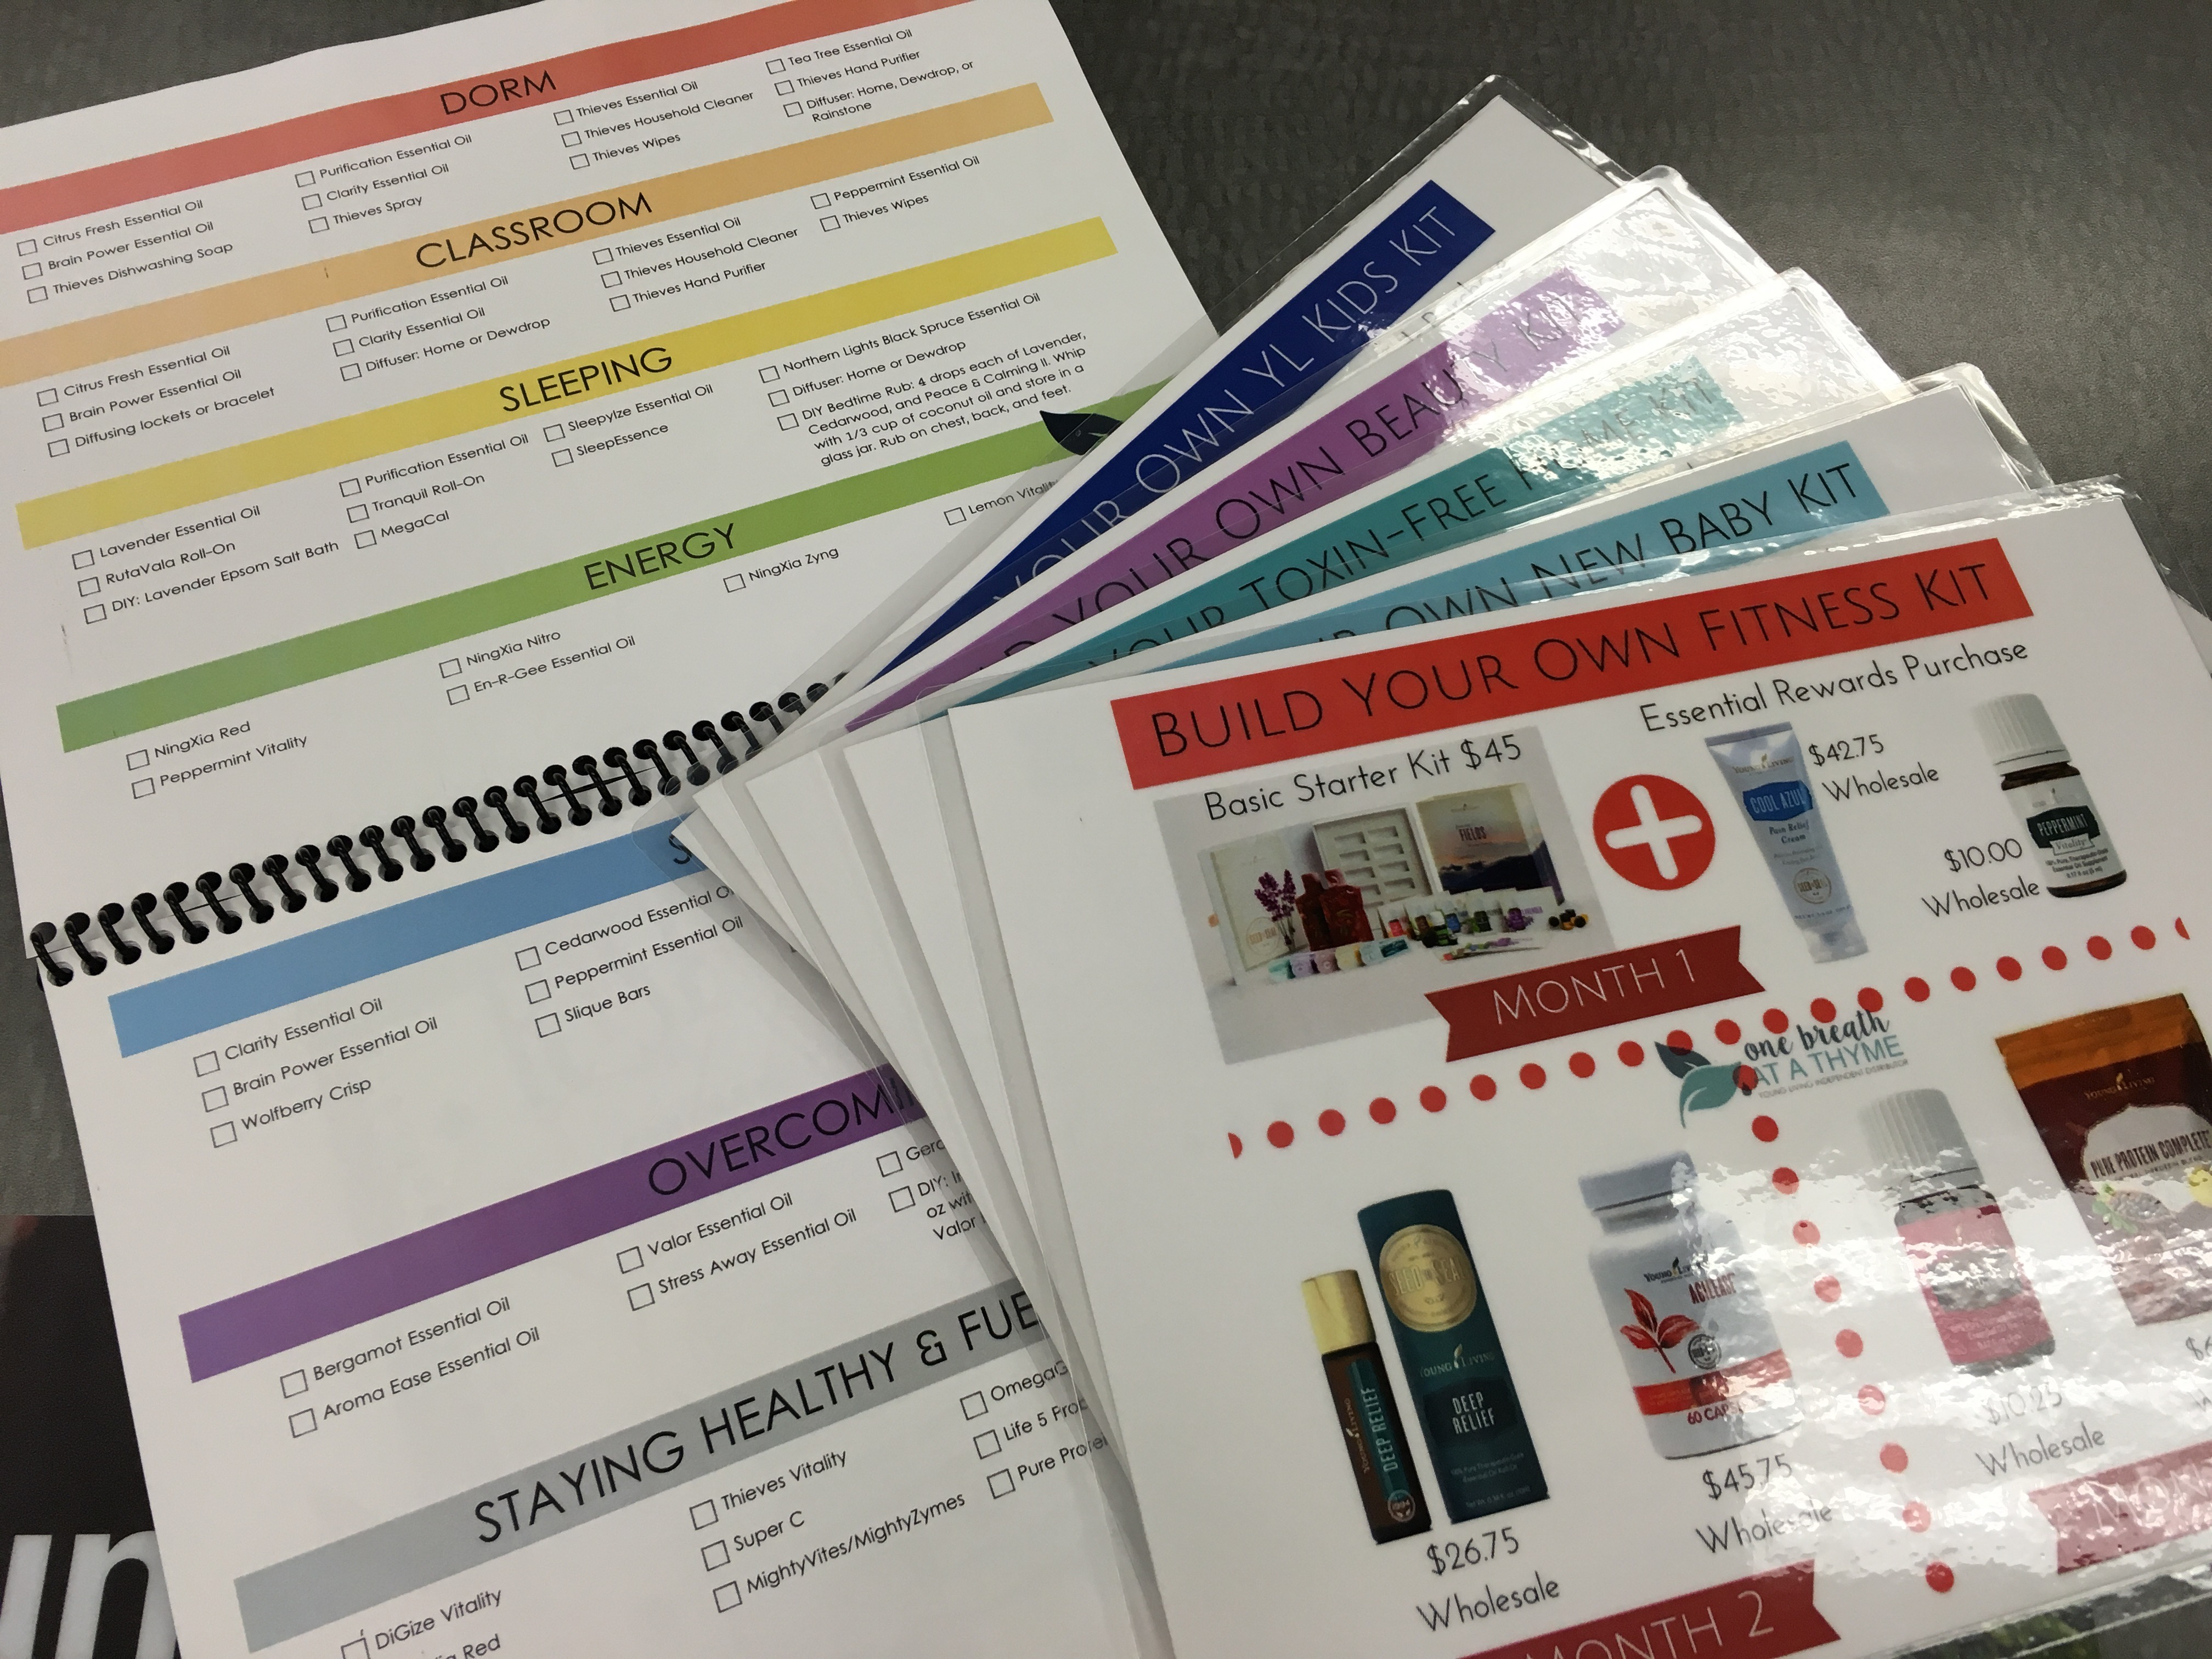 Book and Build Your Own Kits - Back to School In Person Class